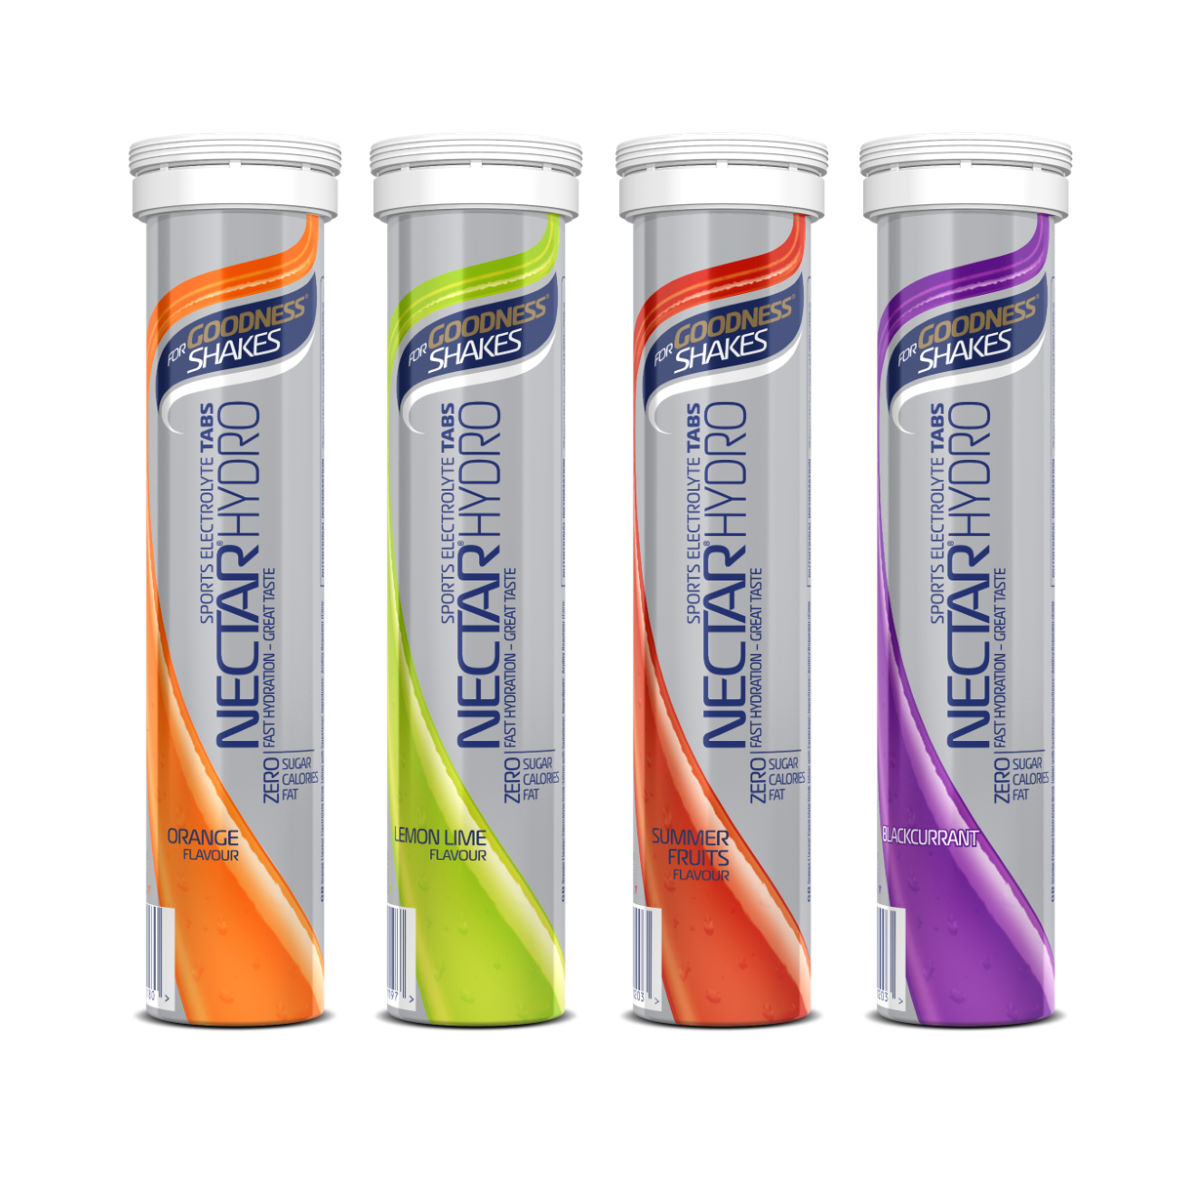 For Goodness Shakes Nectar Hydro Tabs (20 Tabs)